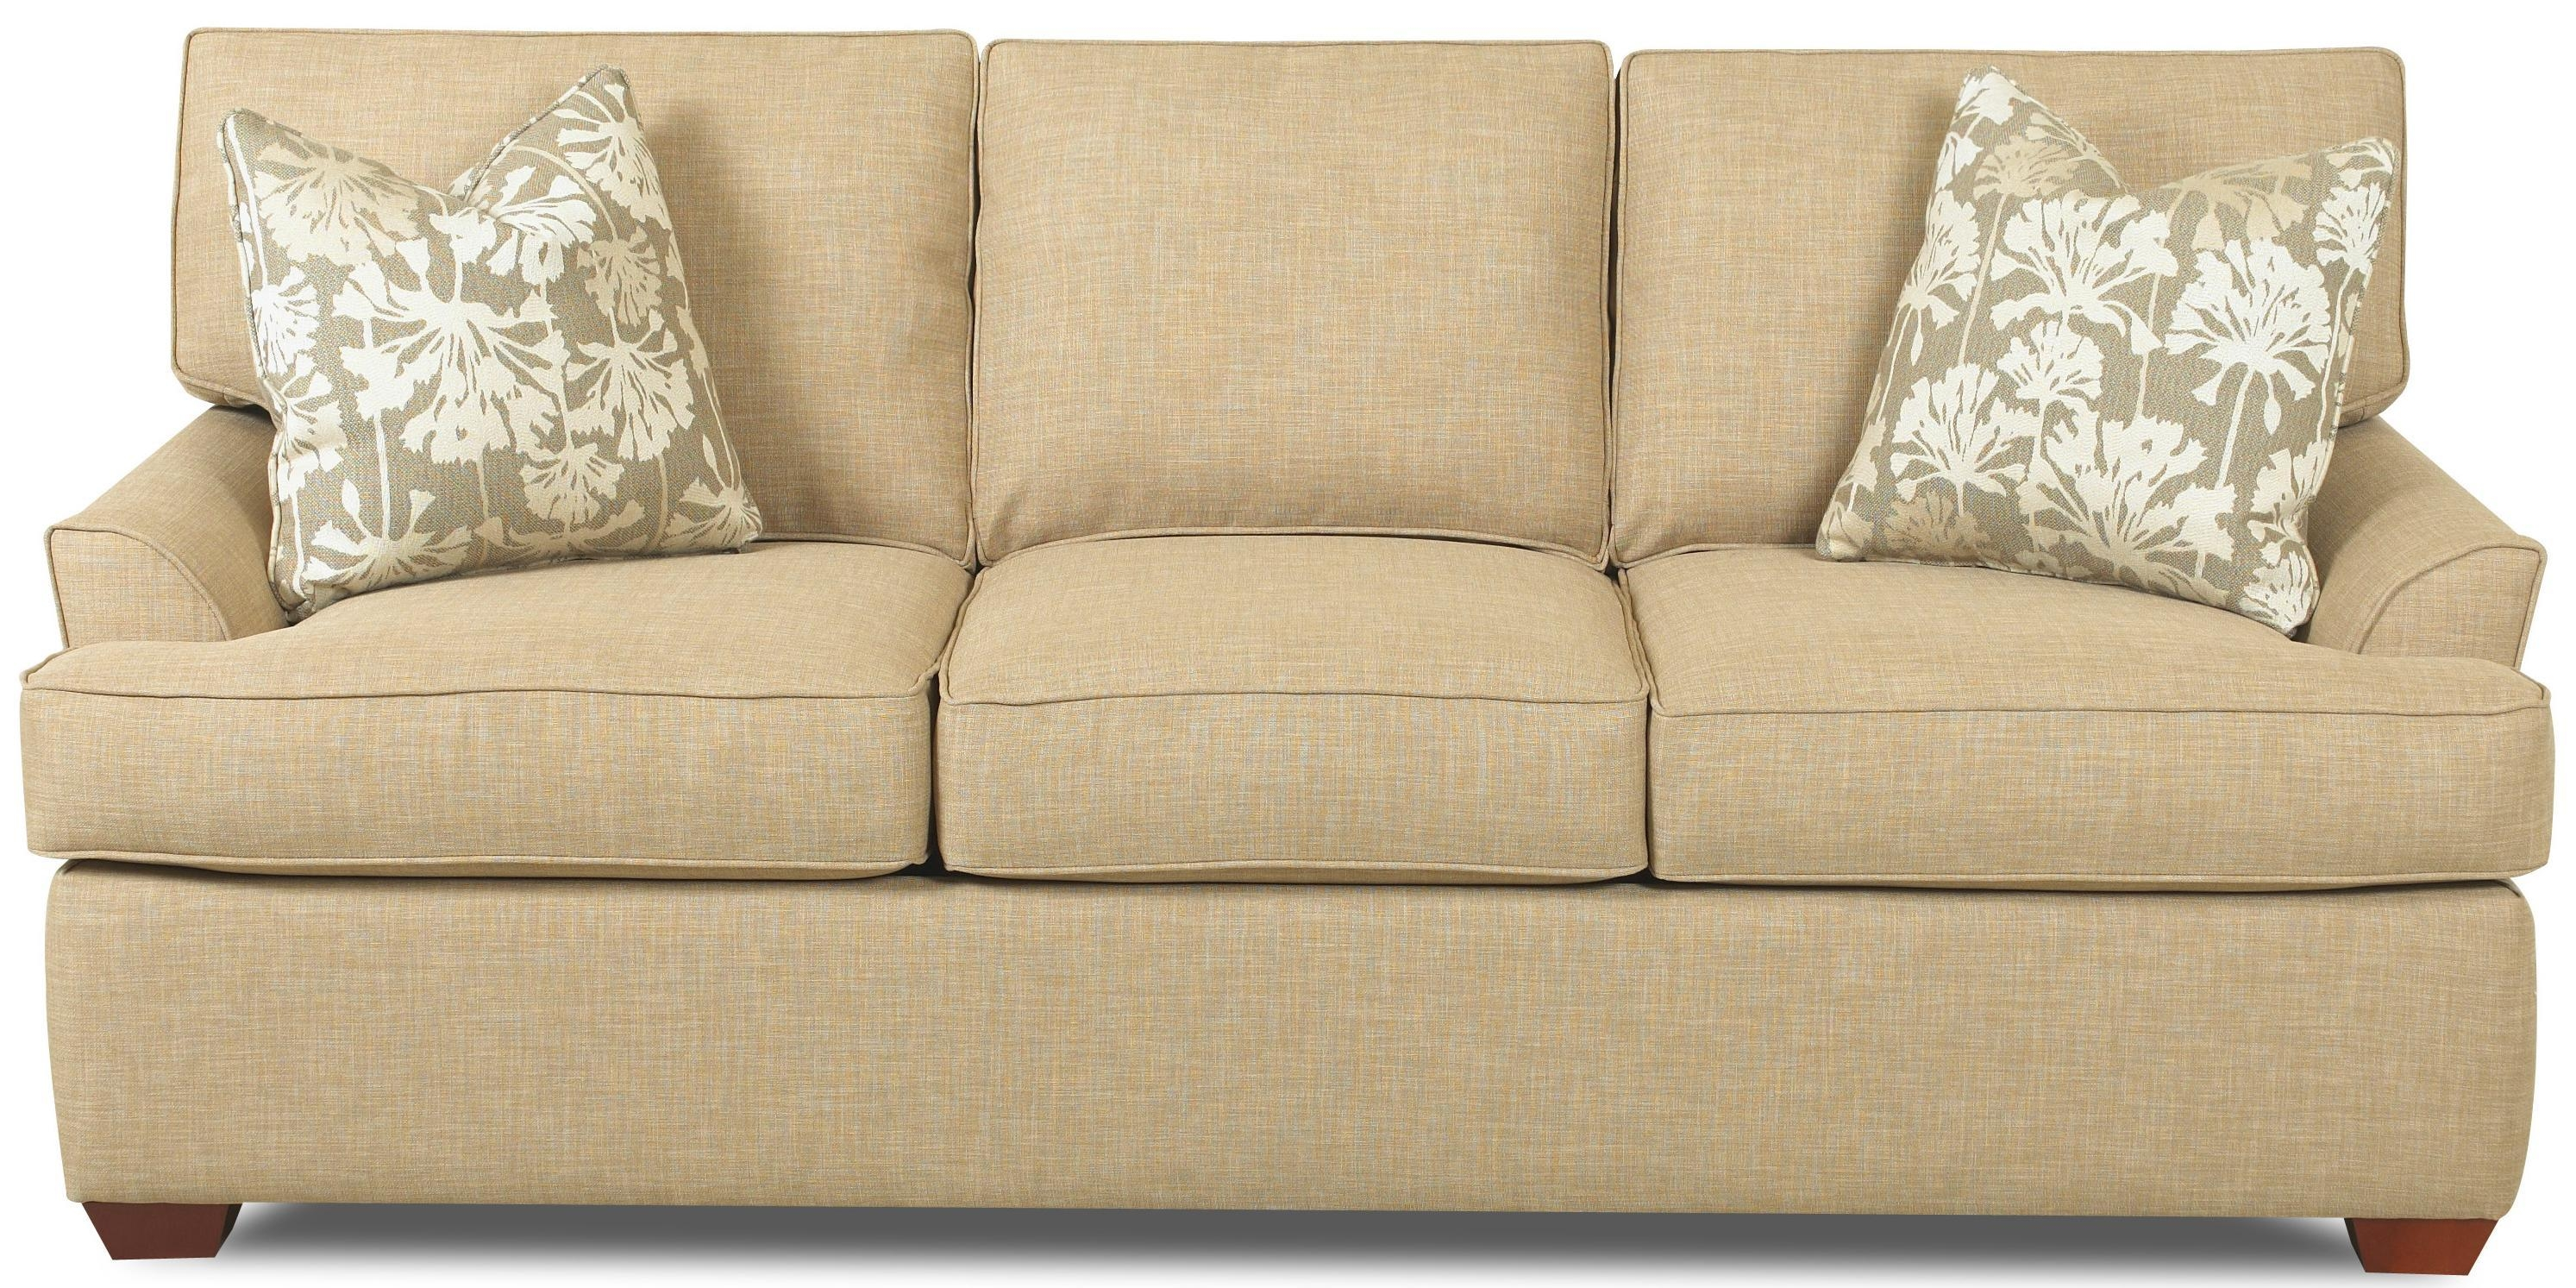 Contemporary 3 Seat Sofa With Flared Arms And T Seat Cushions Within Sofa Cushions (View 14 of 21)